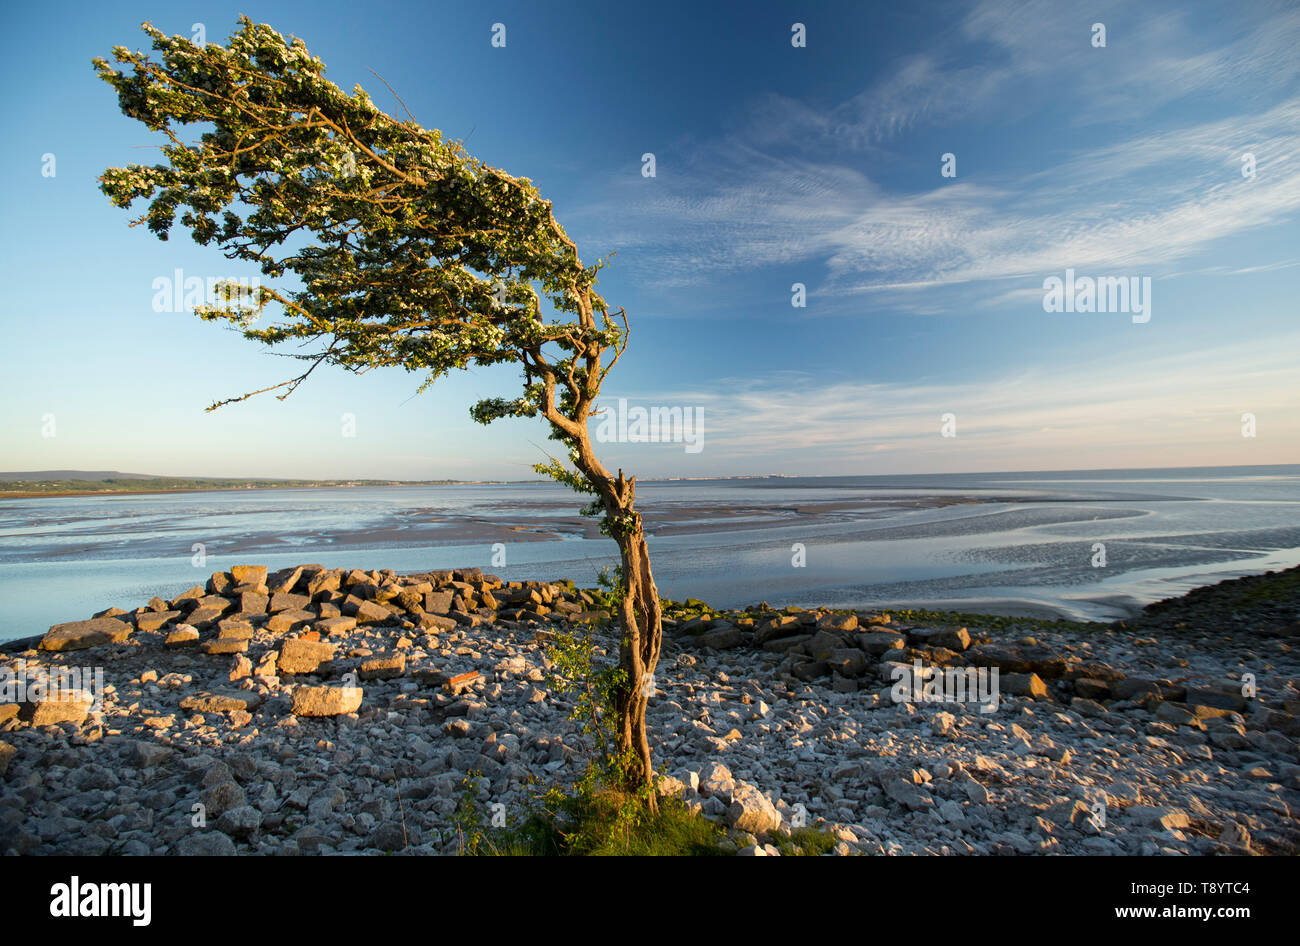 A single, flowering hawthorn tree, Crataegus monogyna, at sunset growing at Jenny Brown's Point near the village of Silverdale on the edge of the estu - Stock Image